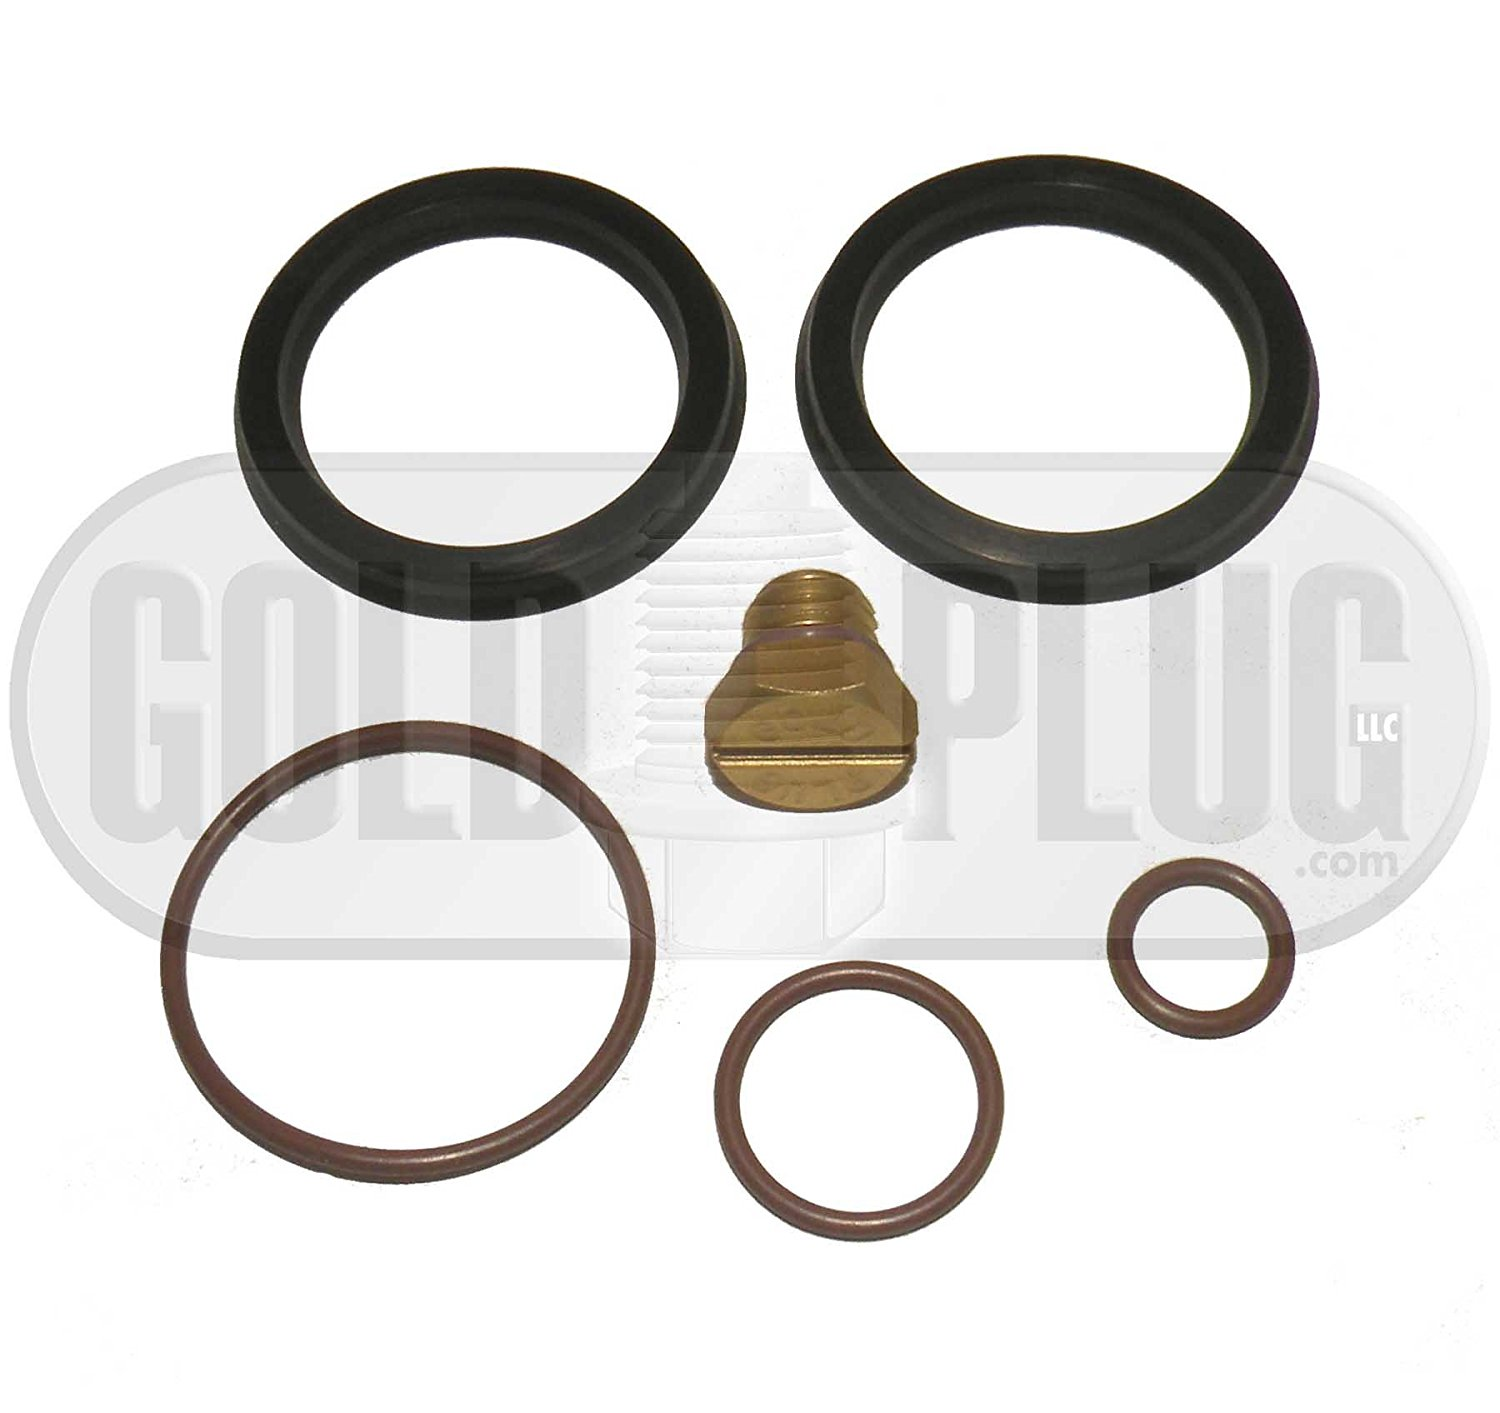 hight resolution of get quotations duramax primer fuel filter rebuild seal kit for 2001 2010 gm duramax includes aluminum bleeder